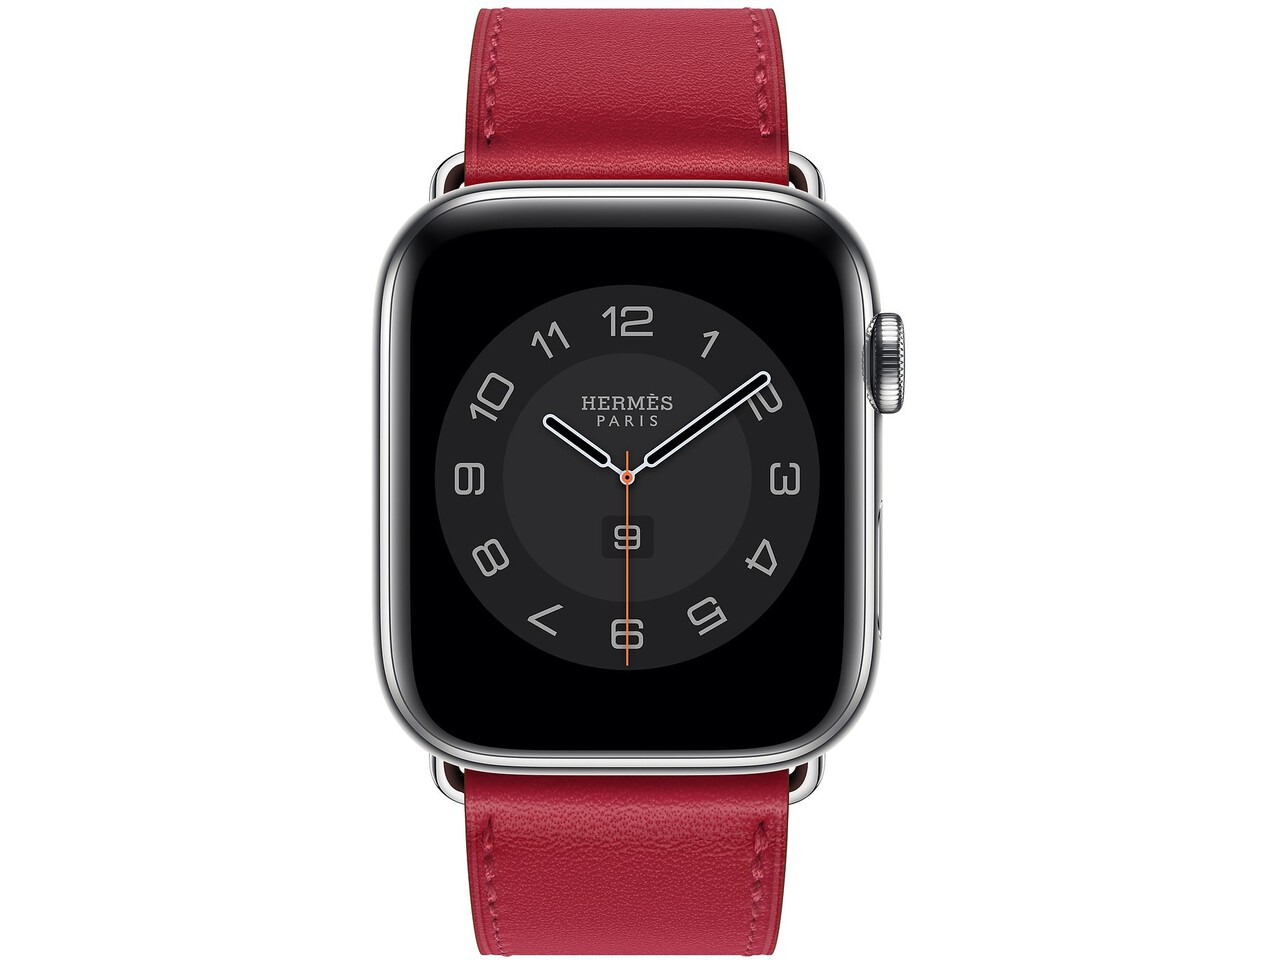 apple watch hermes series 6 cellular 44mm silver stainless rouge piment double tour